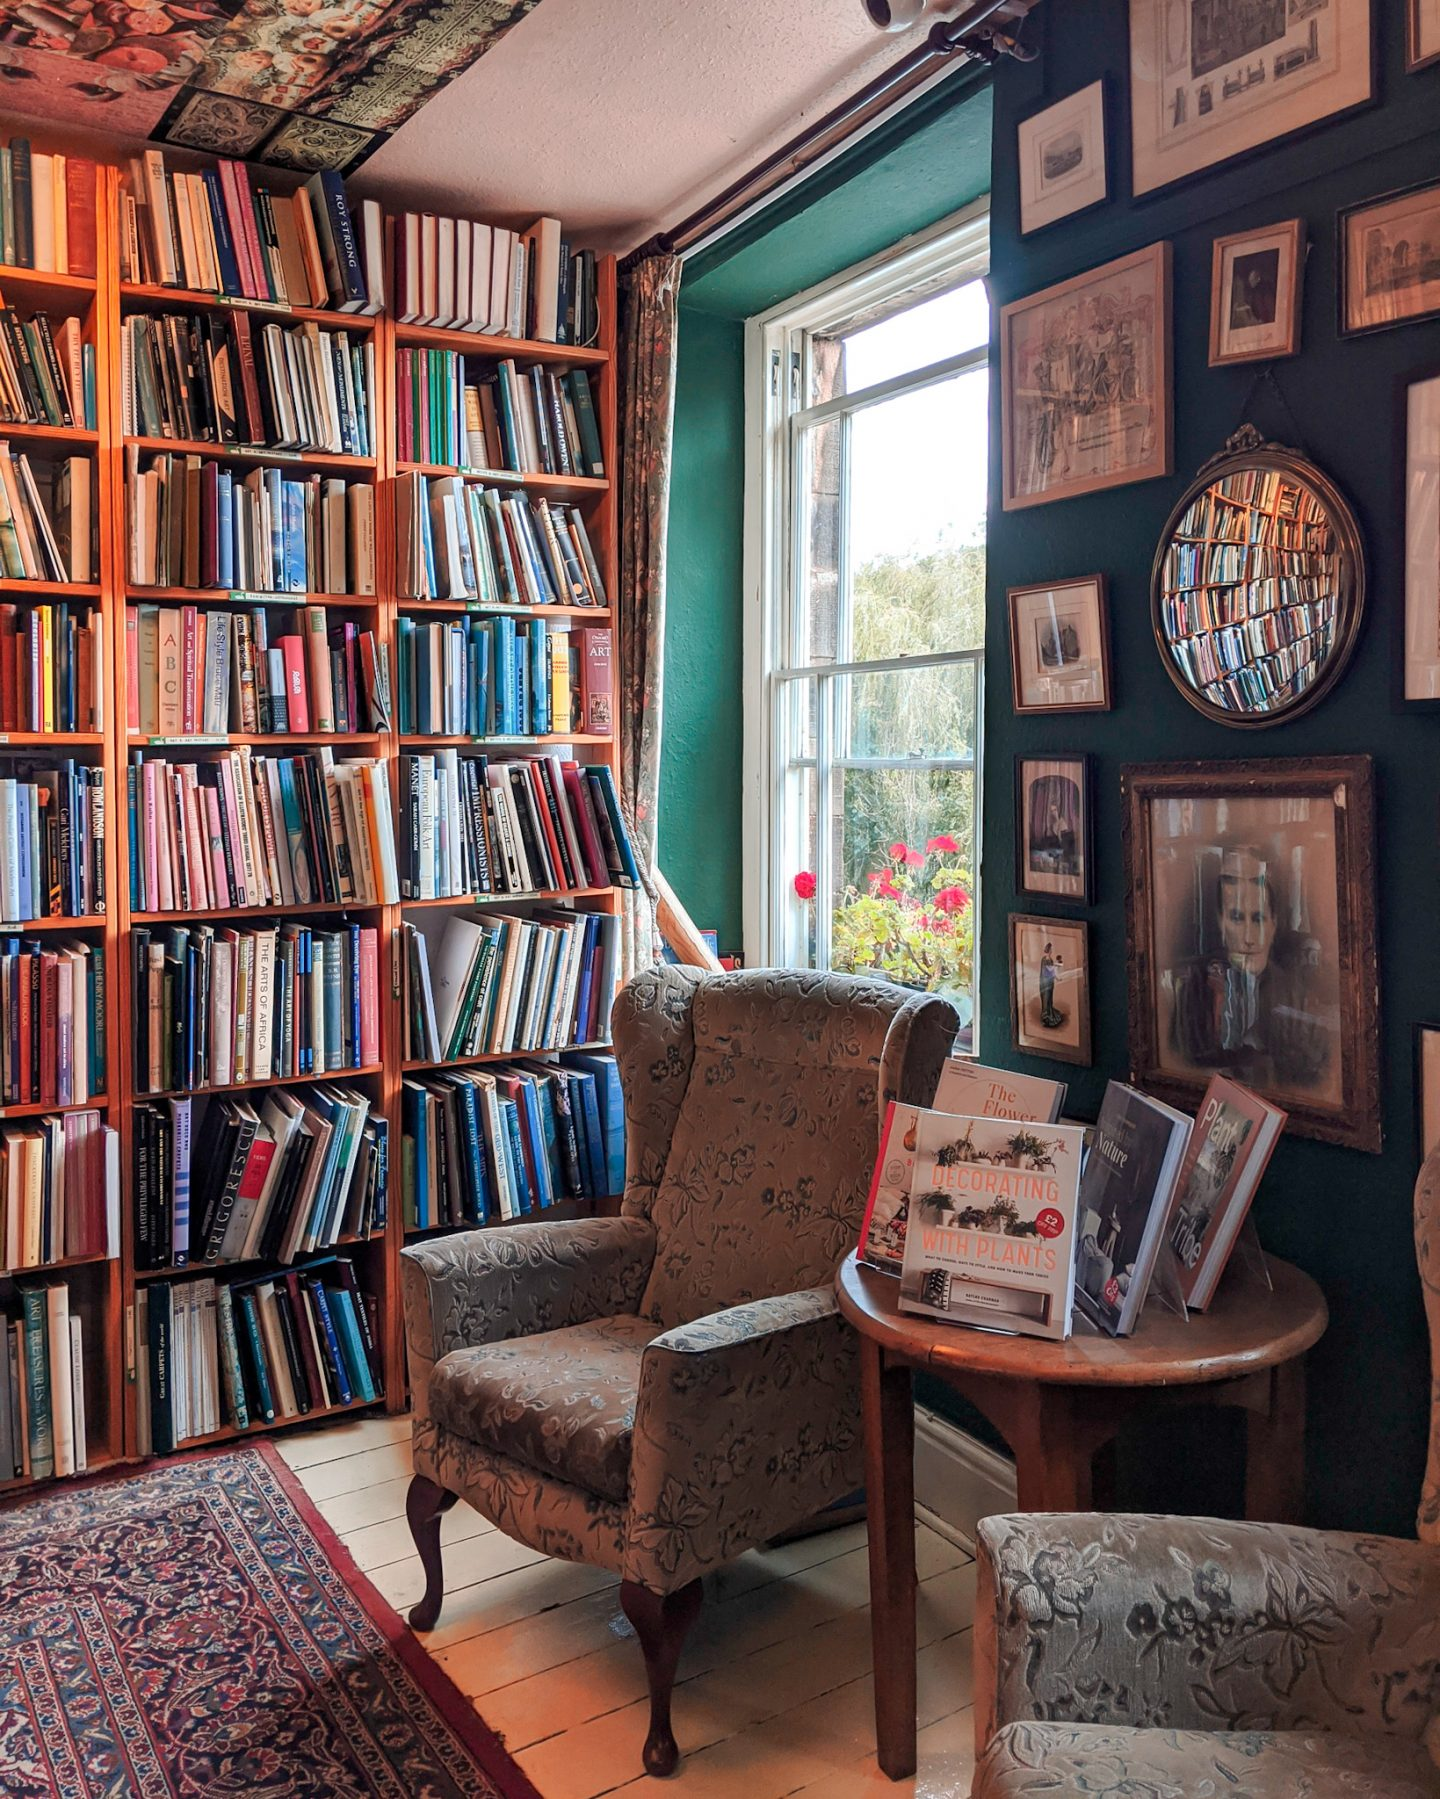 An armchair next to a table of books providing a cosy reading retreat.